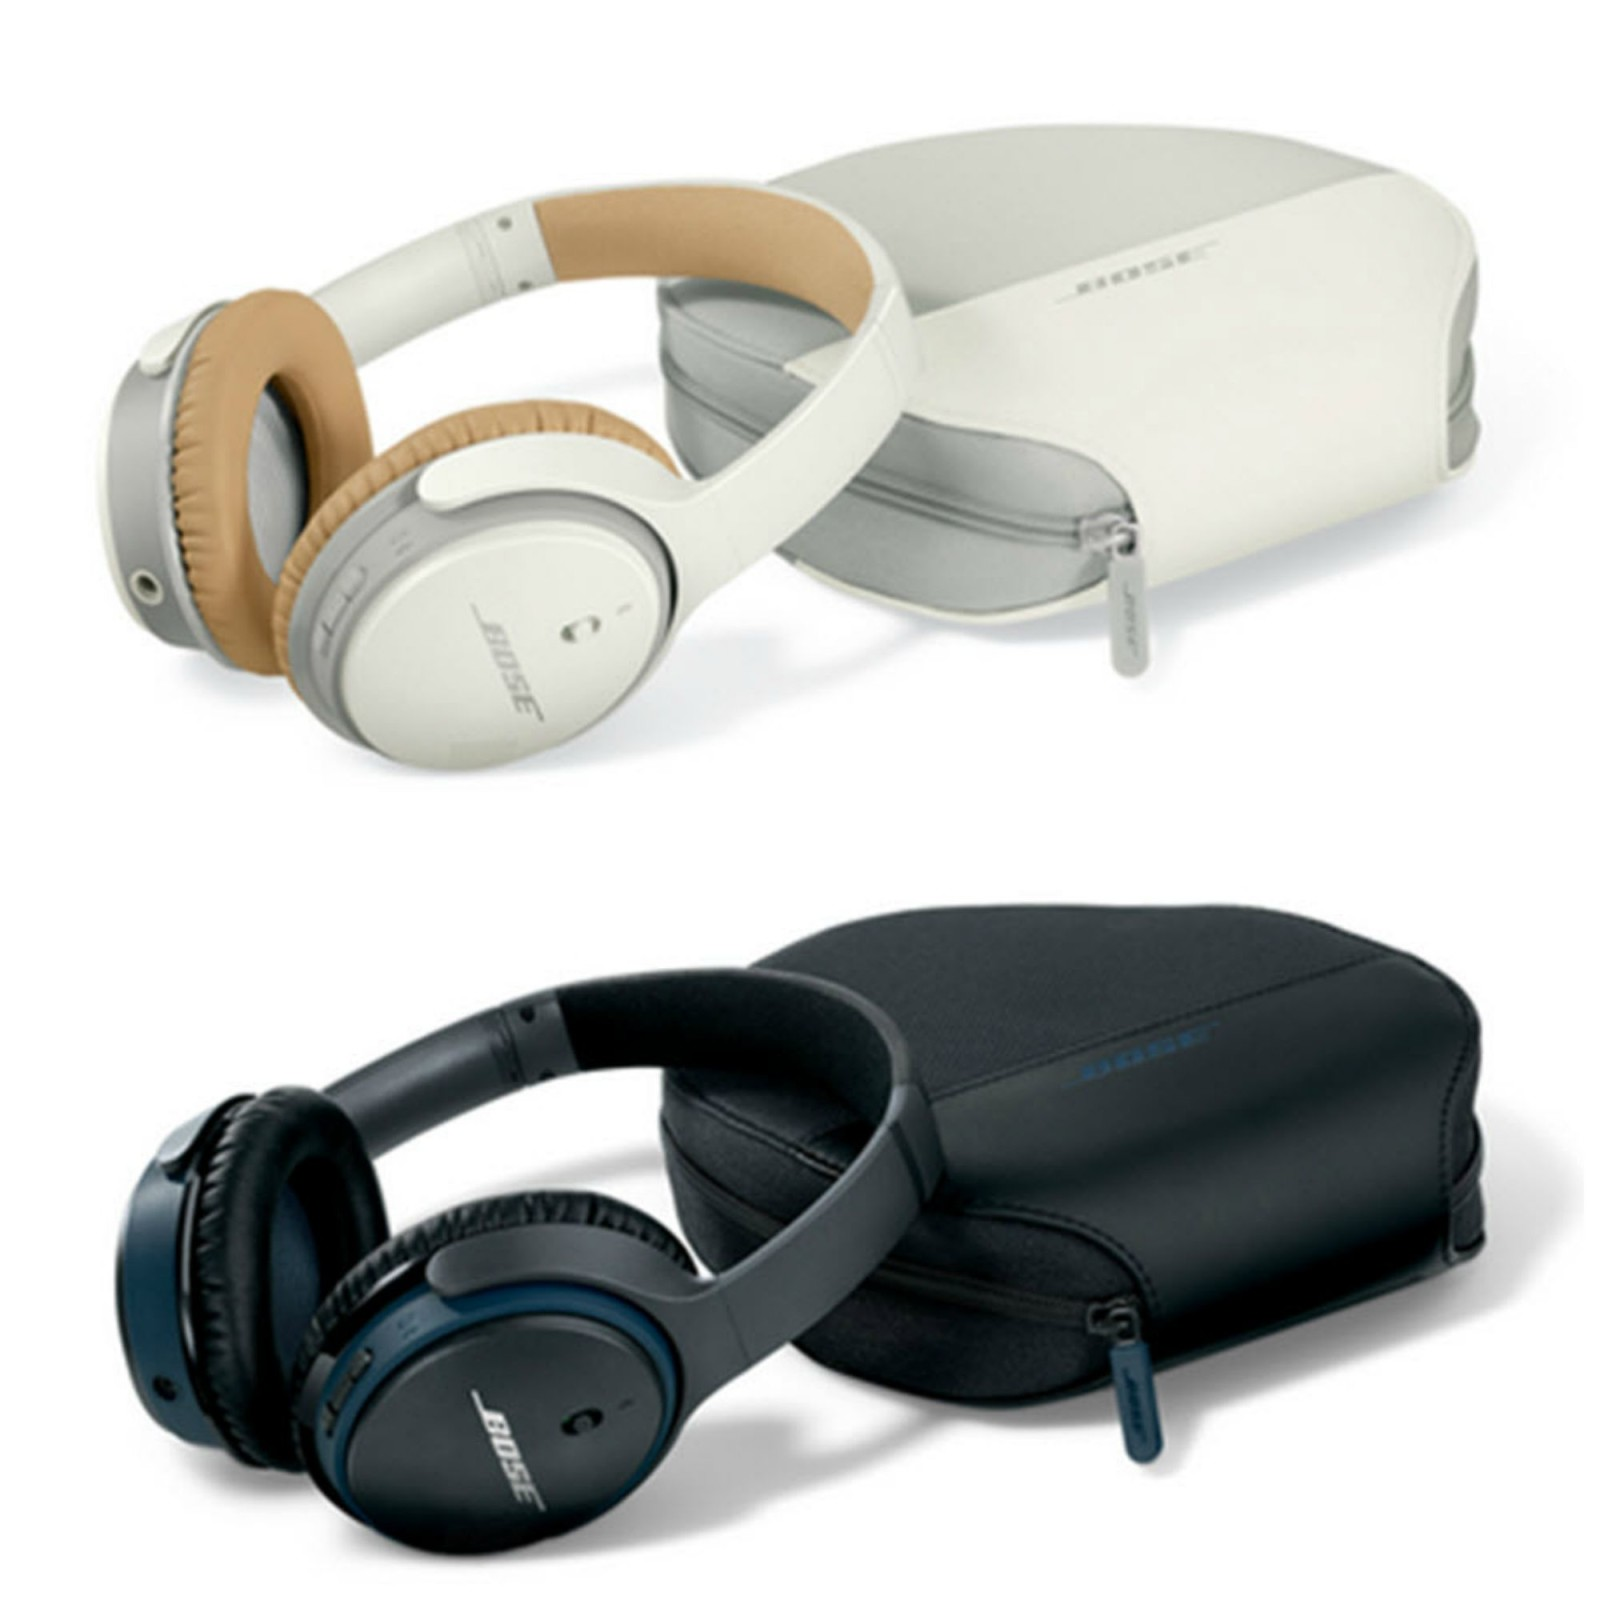 Bose-Soundlink-Headphones-II-Collage-1600x1600